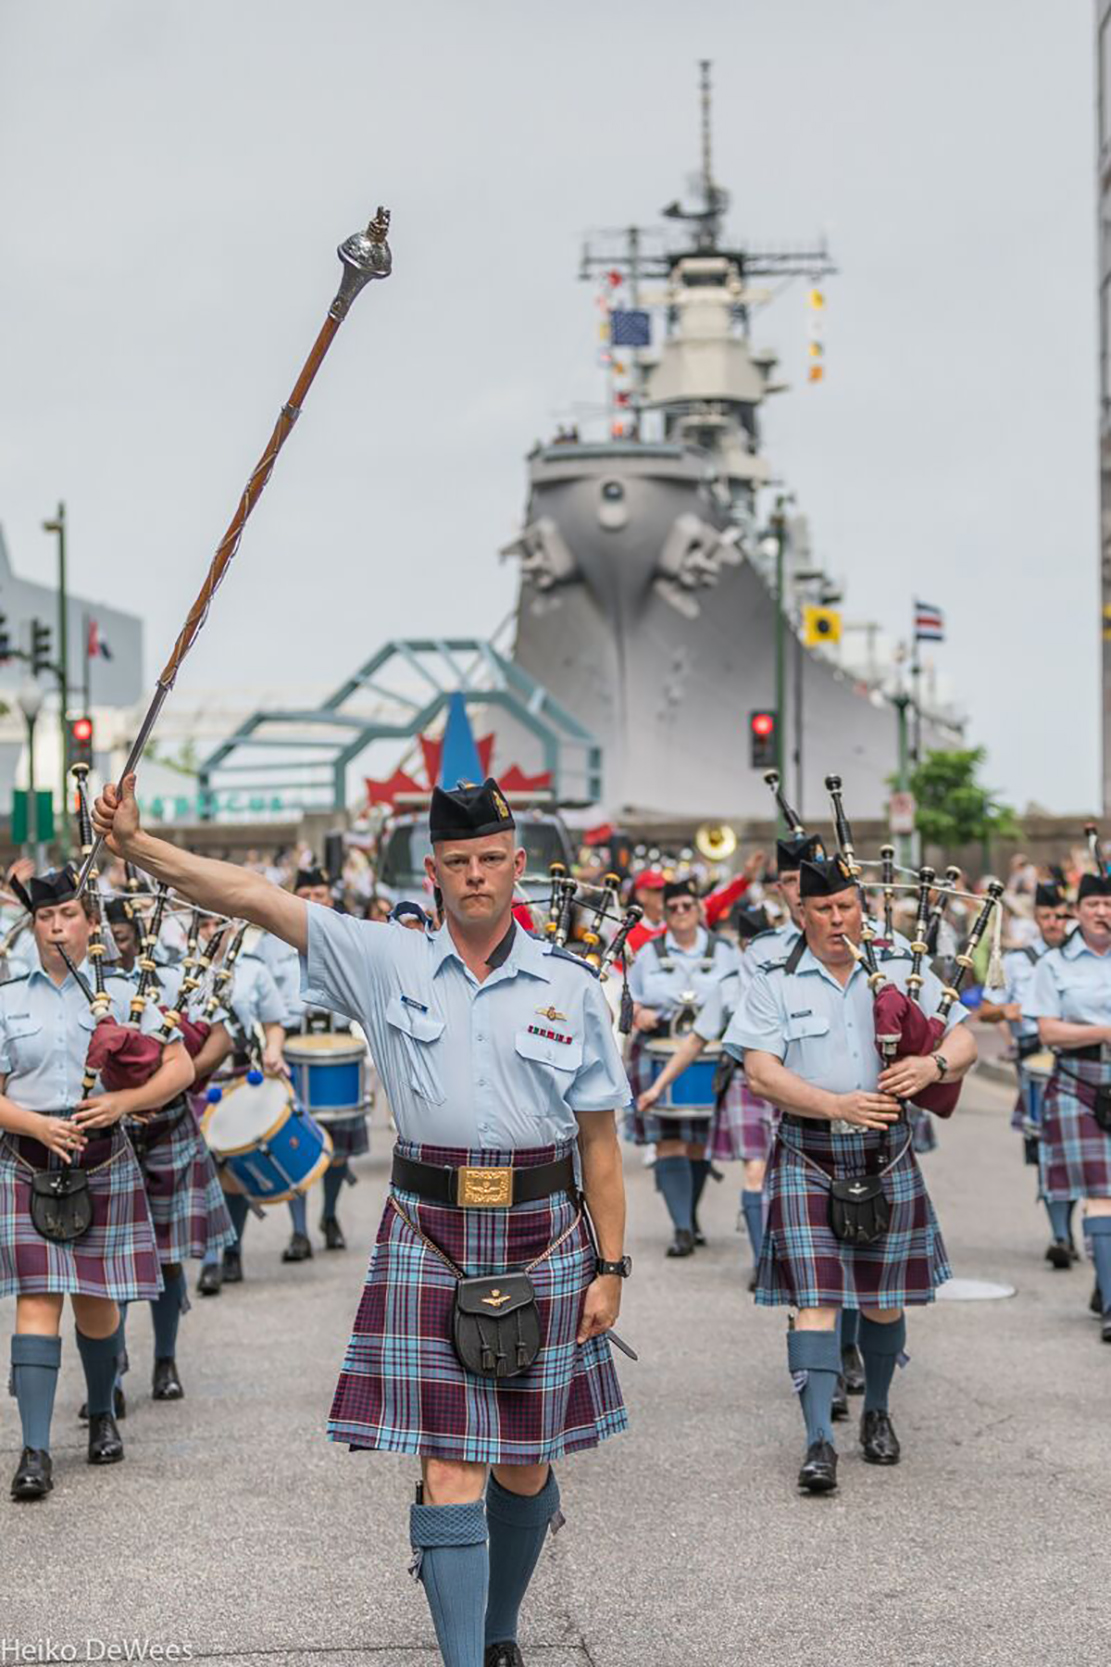 Drum Major Ian Cleaton of 8 Wing Trenton raises the mace as he leads the RCAF Pipes and Drums during the NATO-fest Parade in downtown Norfolk, Virginia, with the historic USS Wisconsin alongside in the background. PHOTO: Heiko DeWees